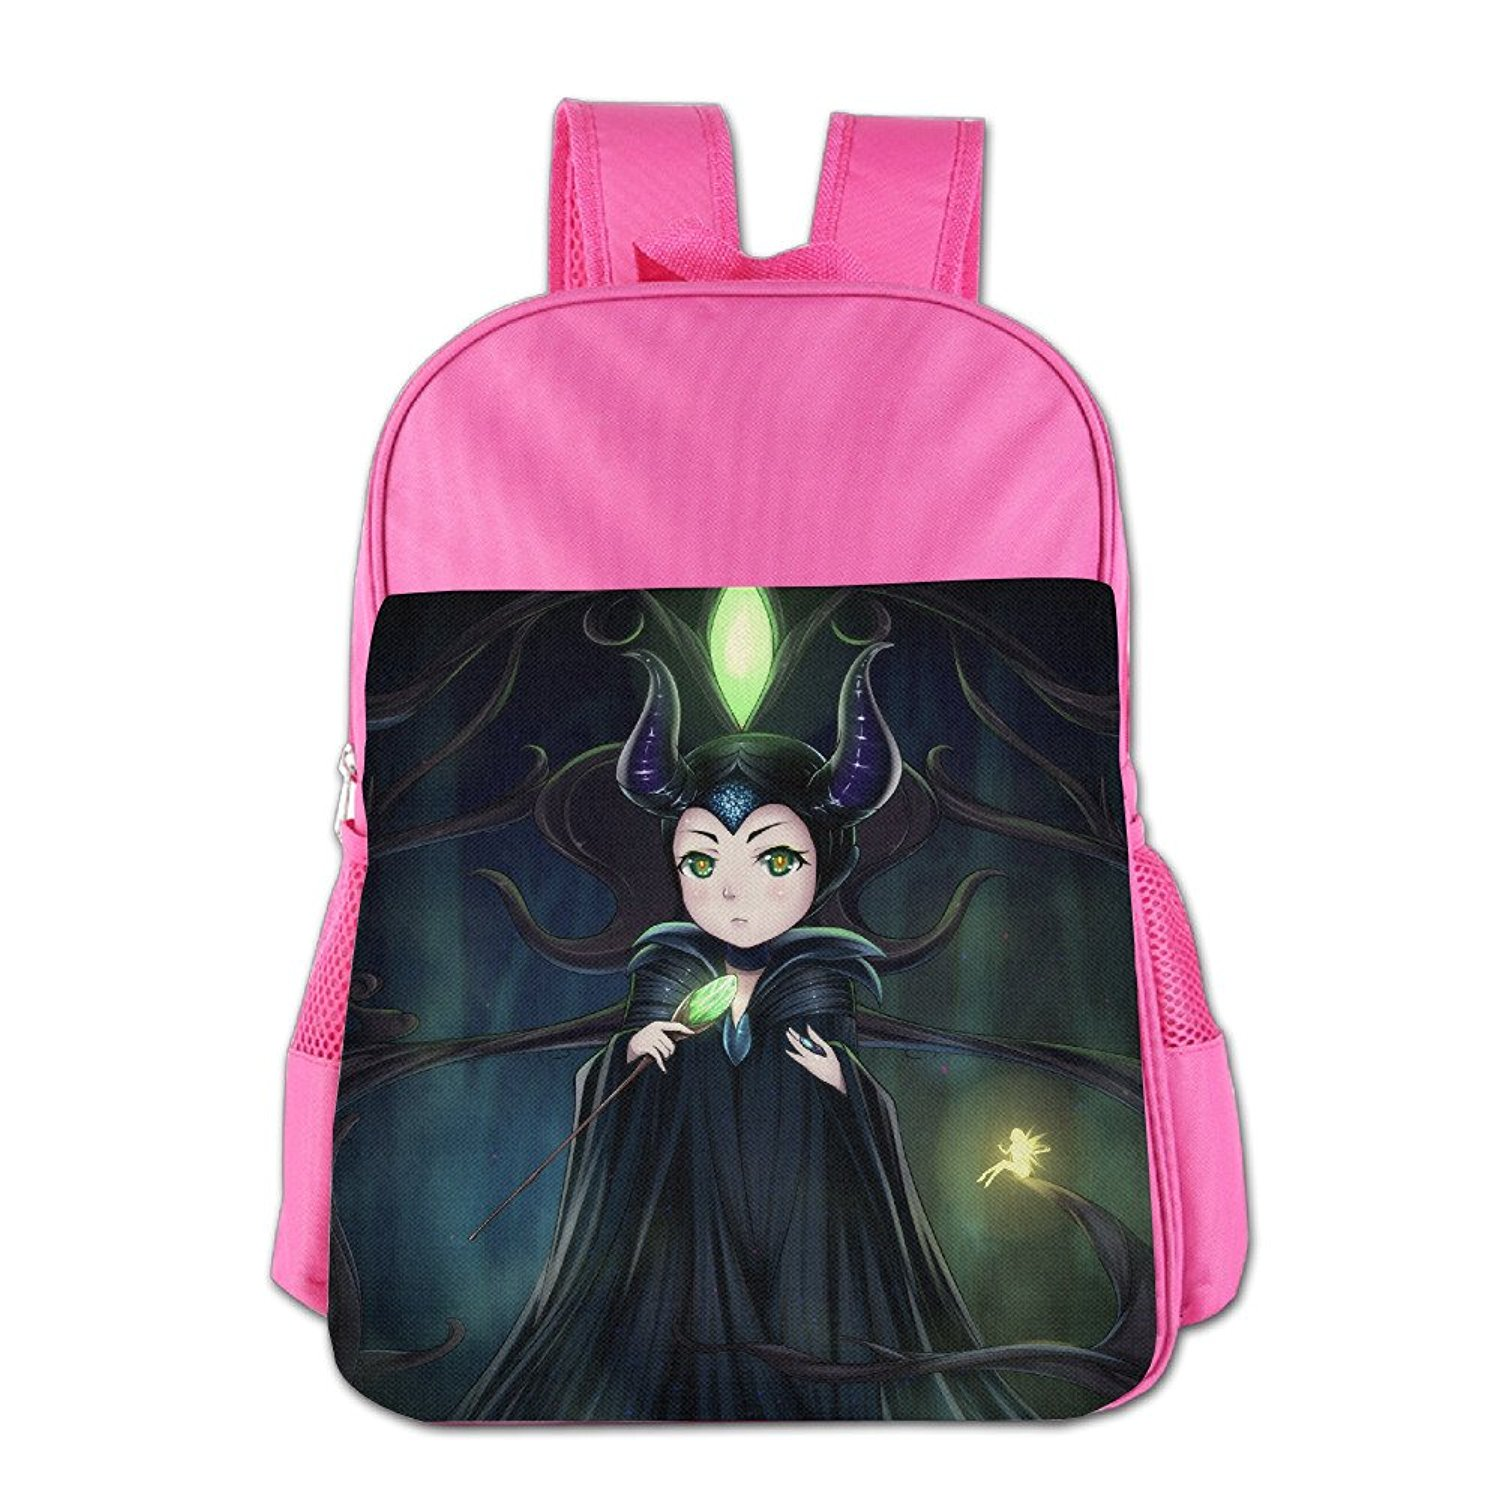 Cheap Maleficent Bag Find Maleficent Bag Deals On Line At